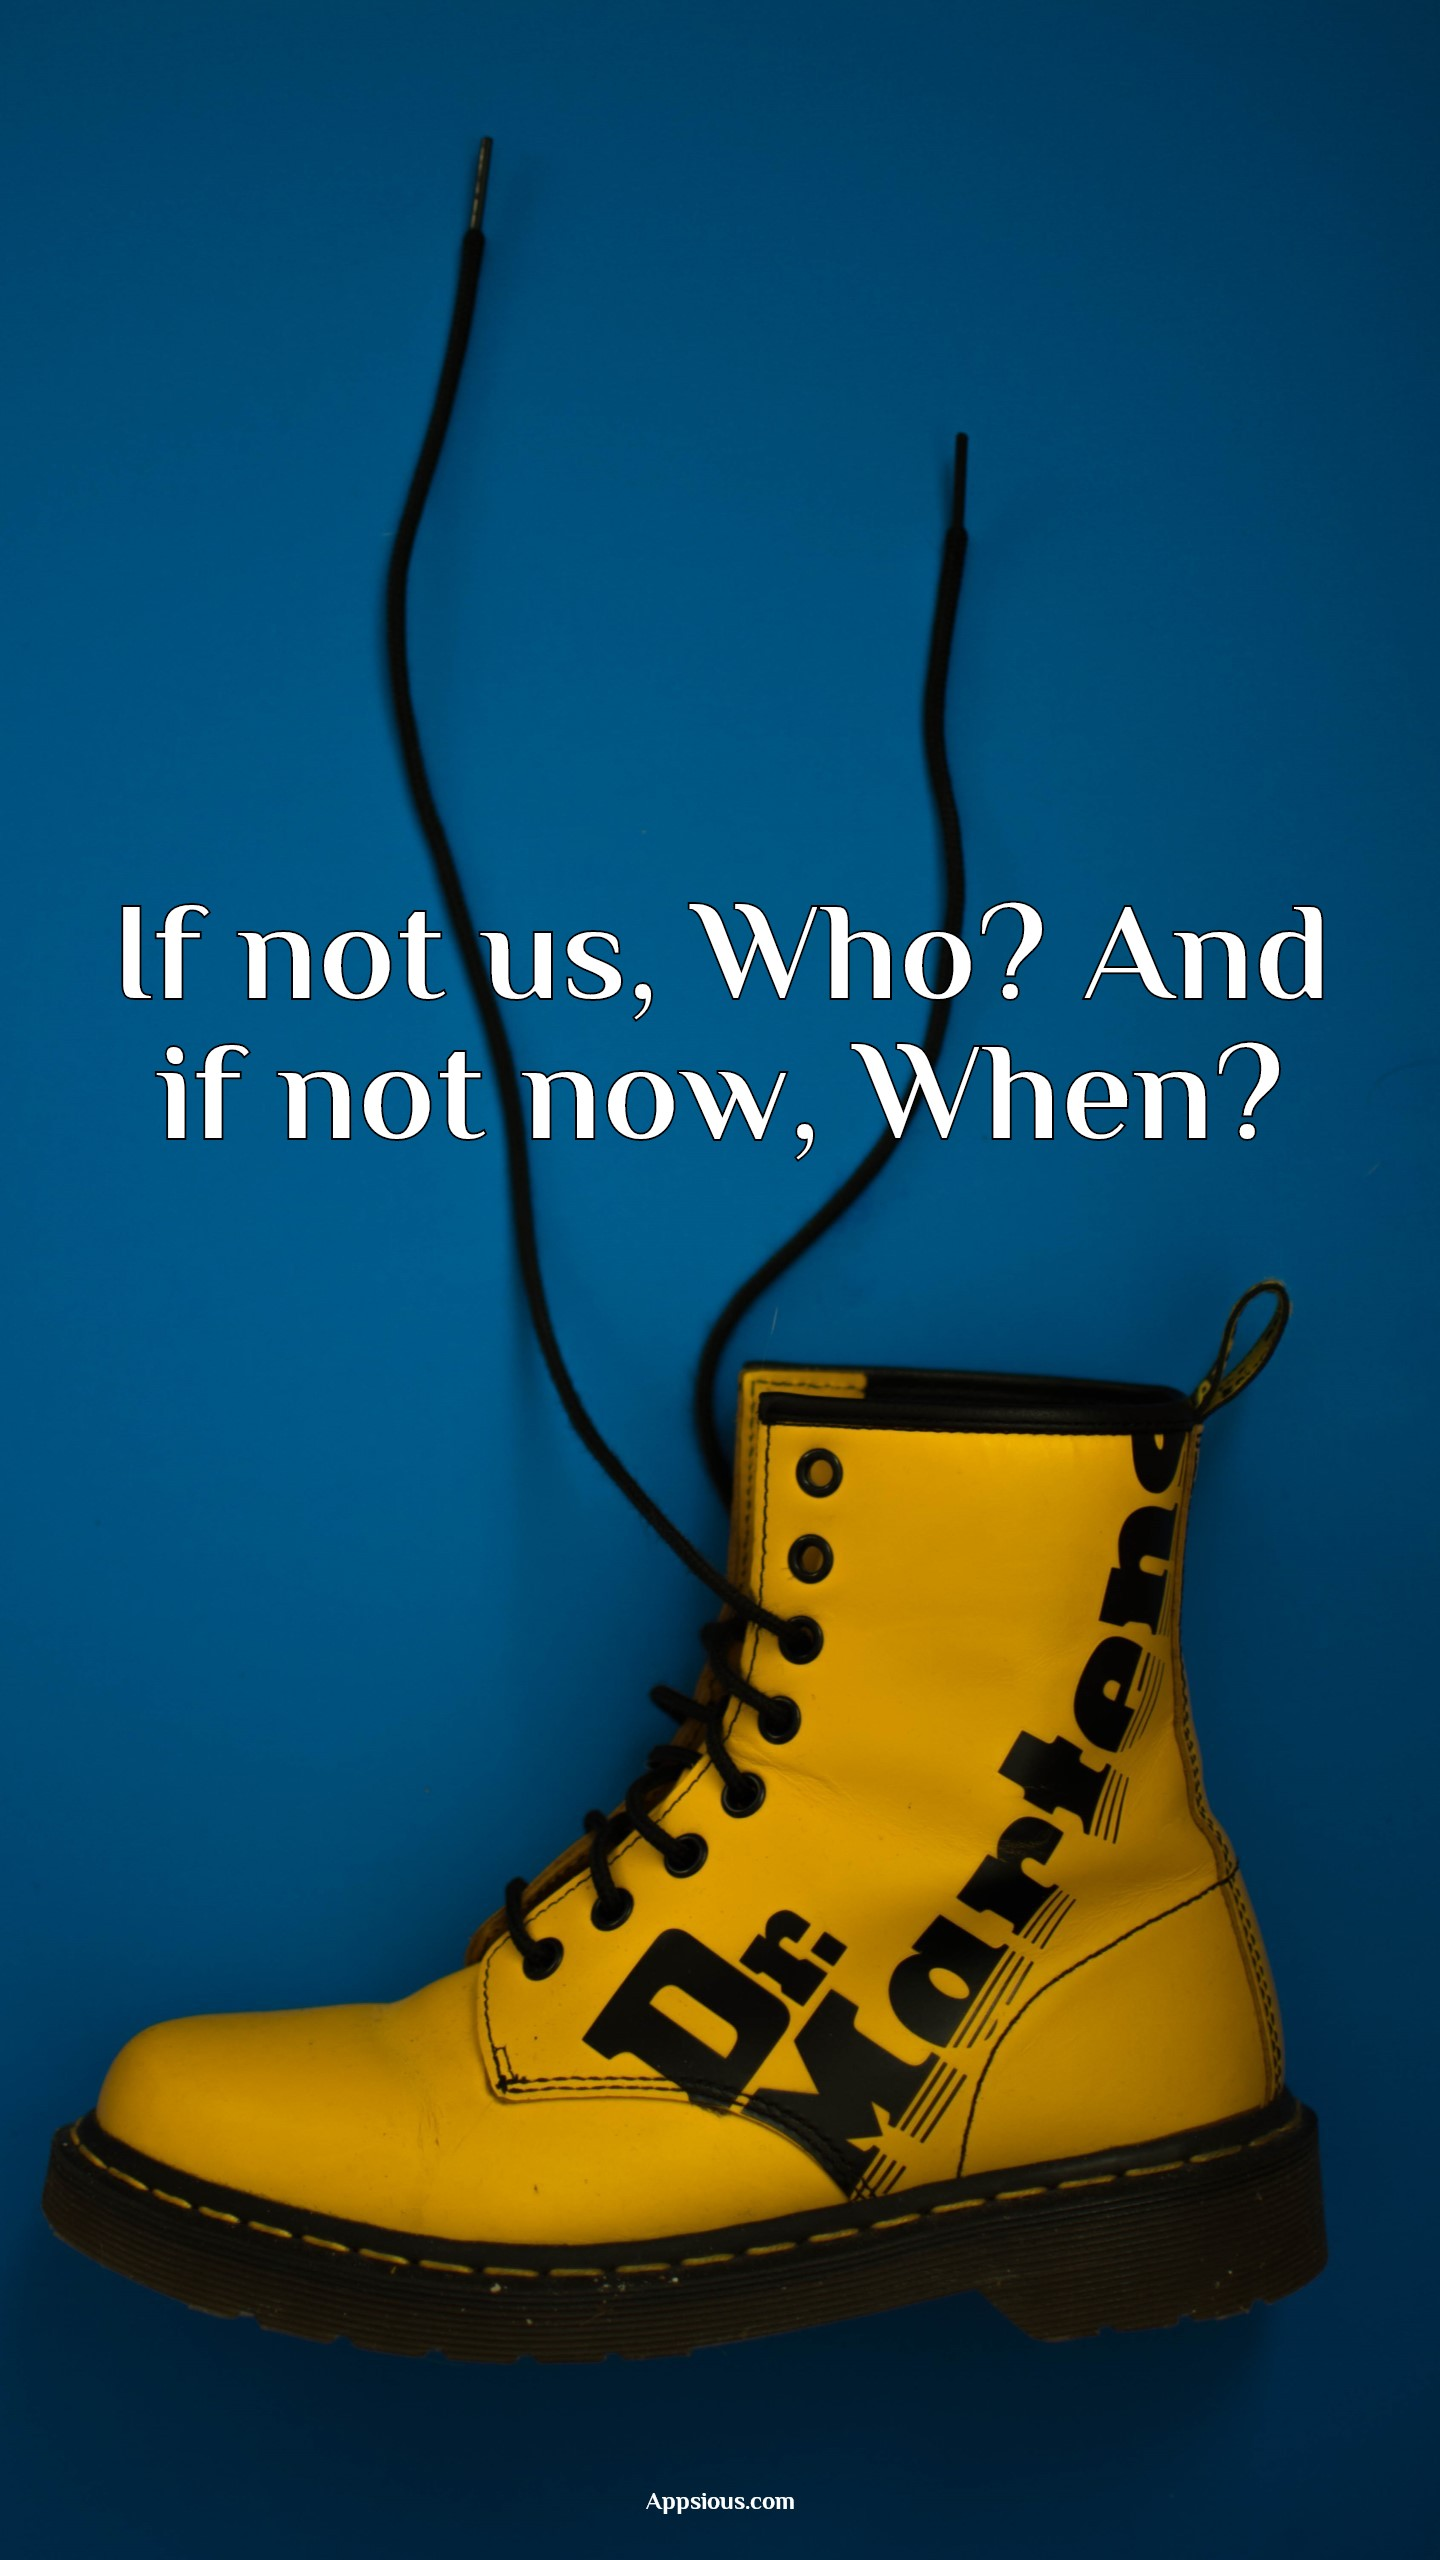 If not us, Who? And if not now, When?